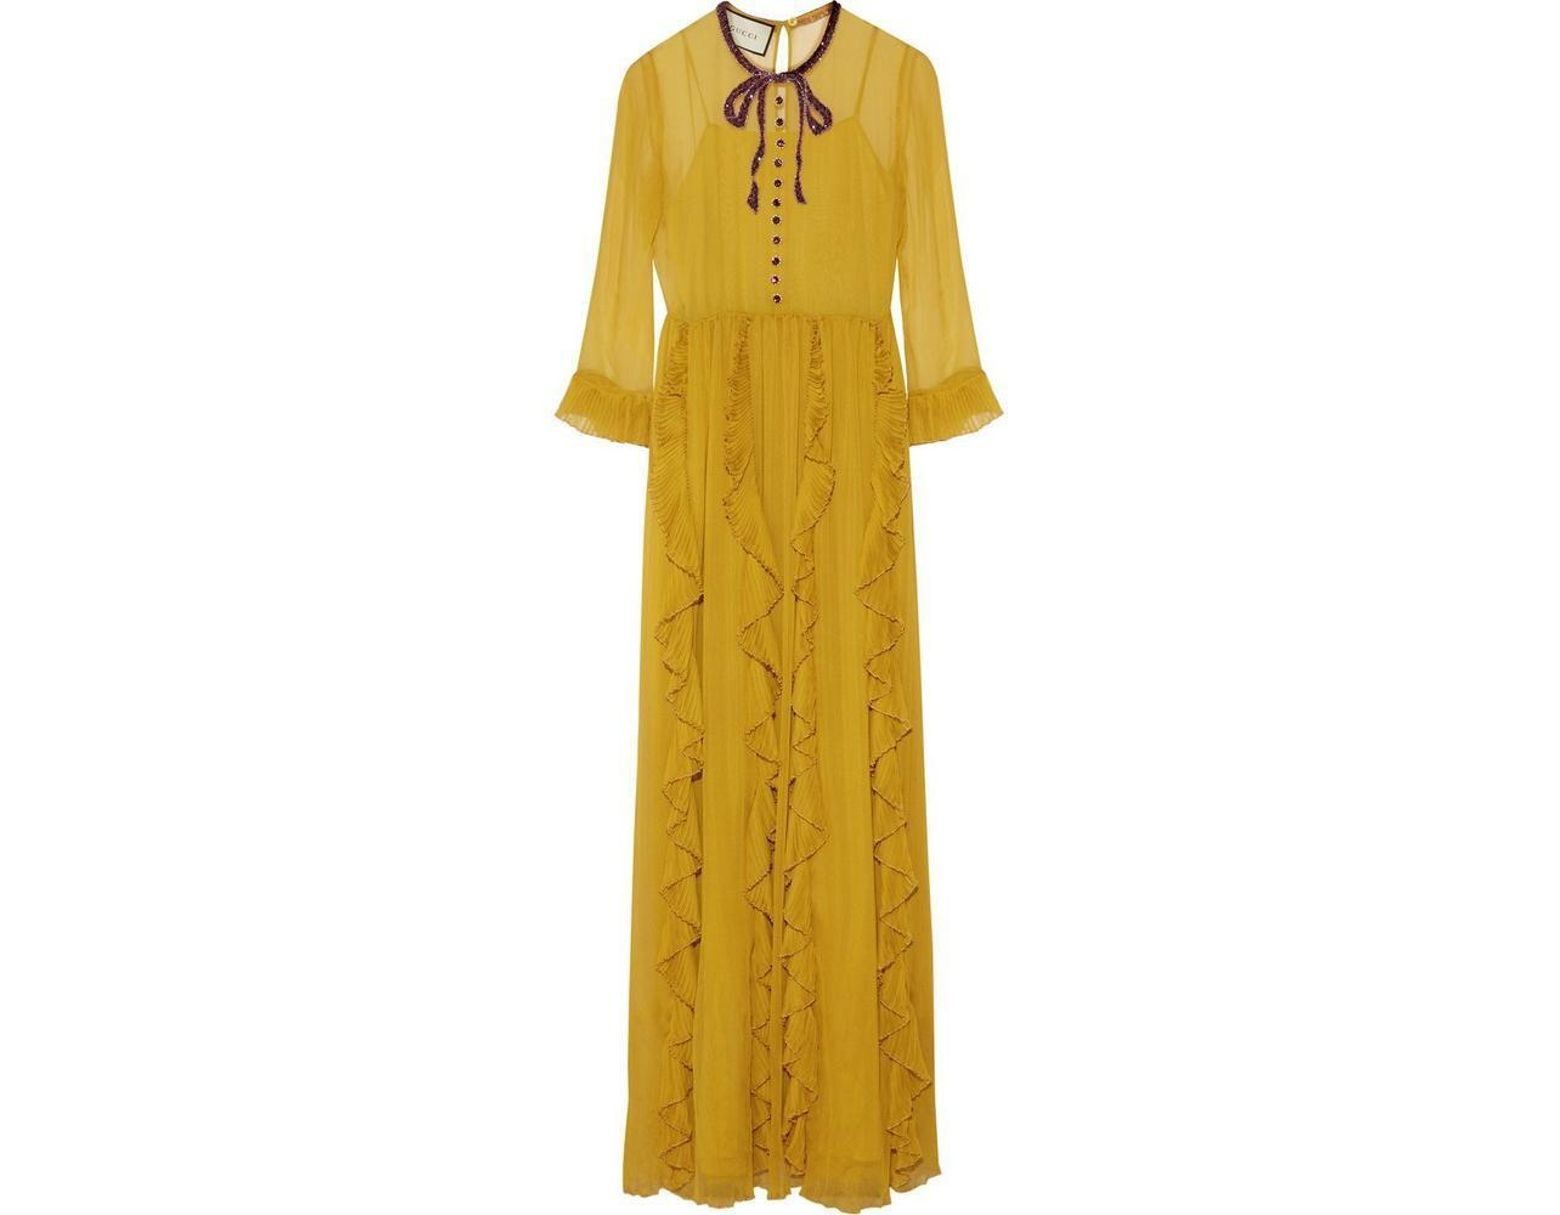 5445c0d8566 Gucci Yellow Silk Chiffon Embroidered Gown in Yellow - Lyst